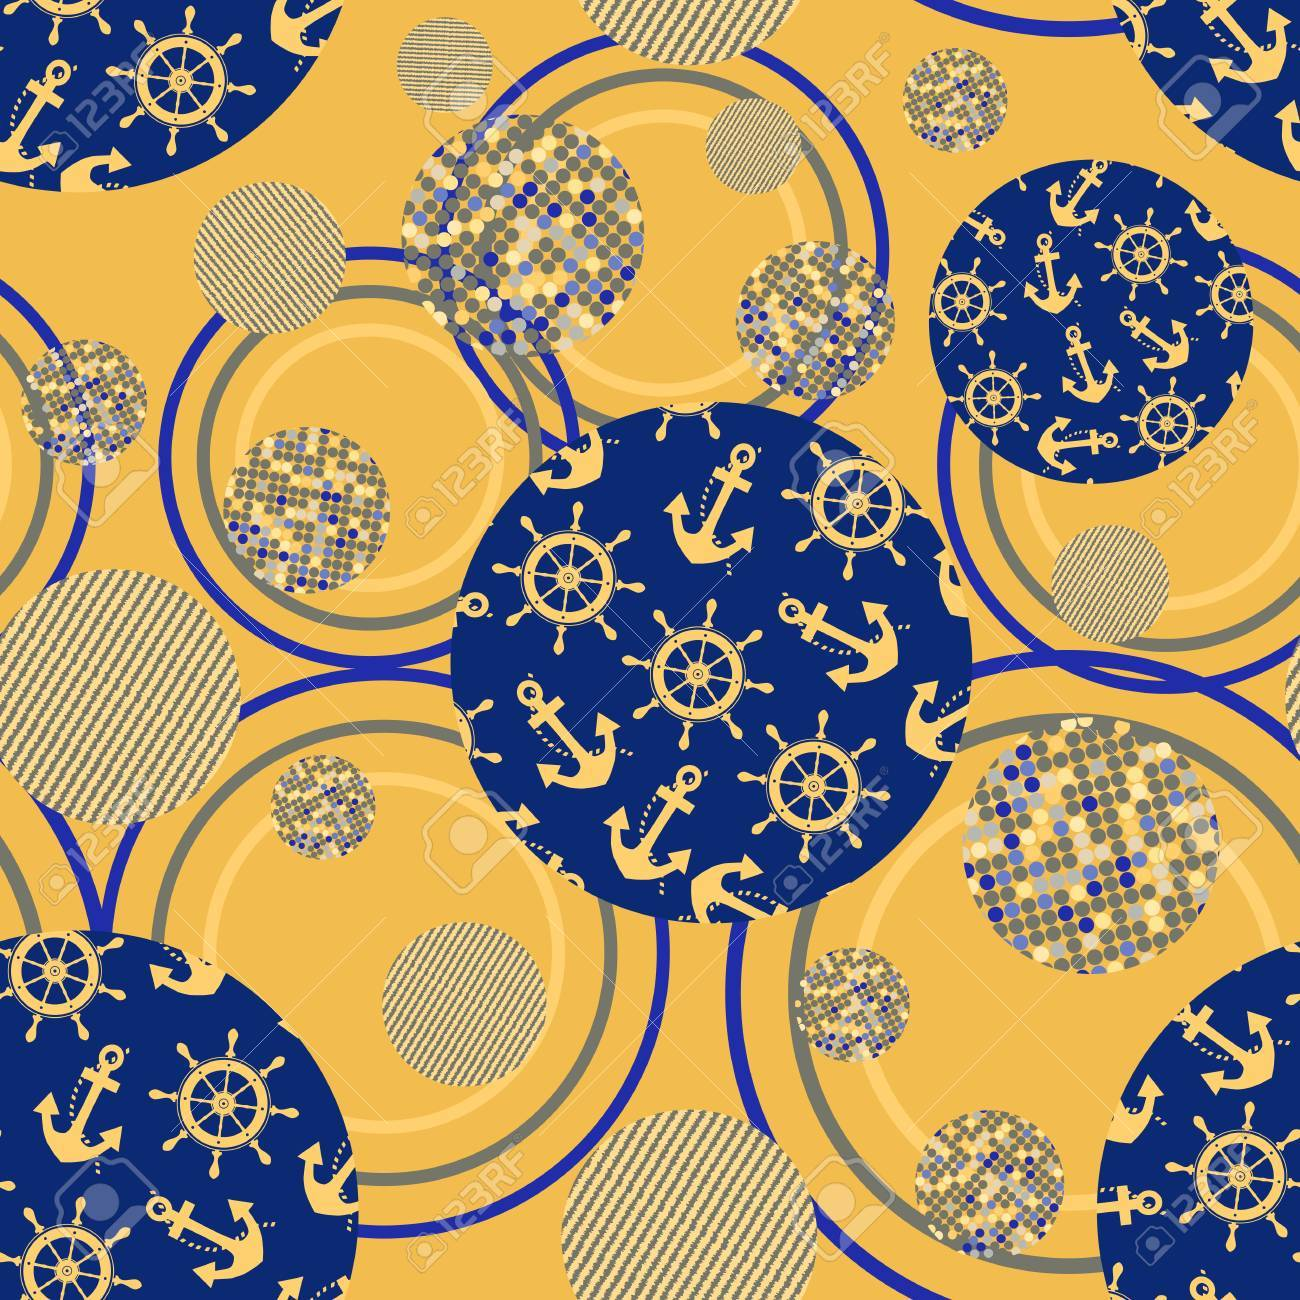 Ornament Of Abstract Circle Seamless Pattern Vector Illustration Anchor Helm Sea Gold And